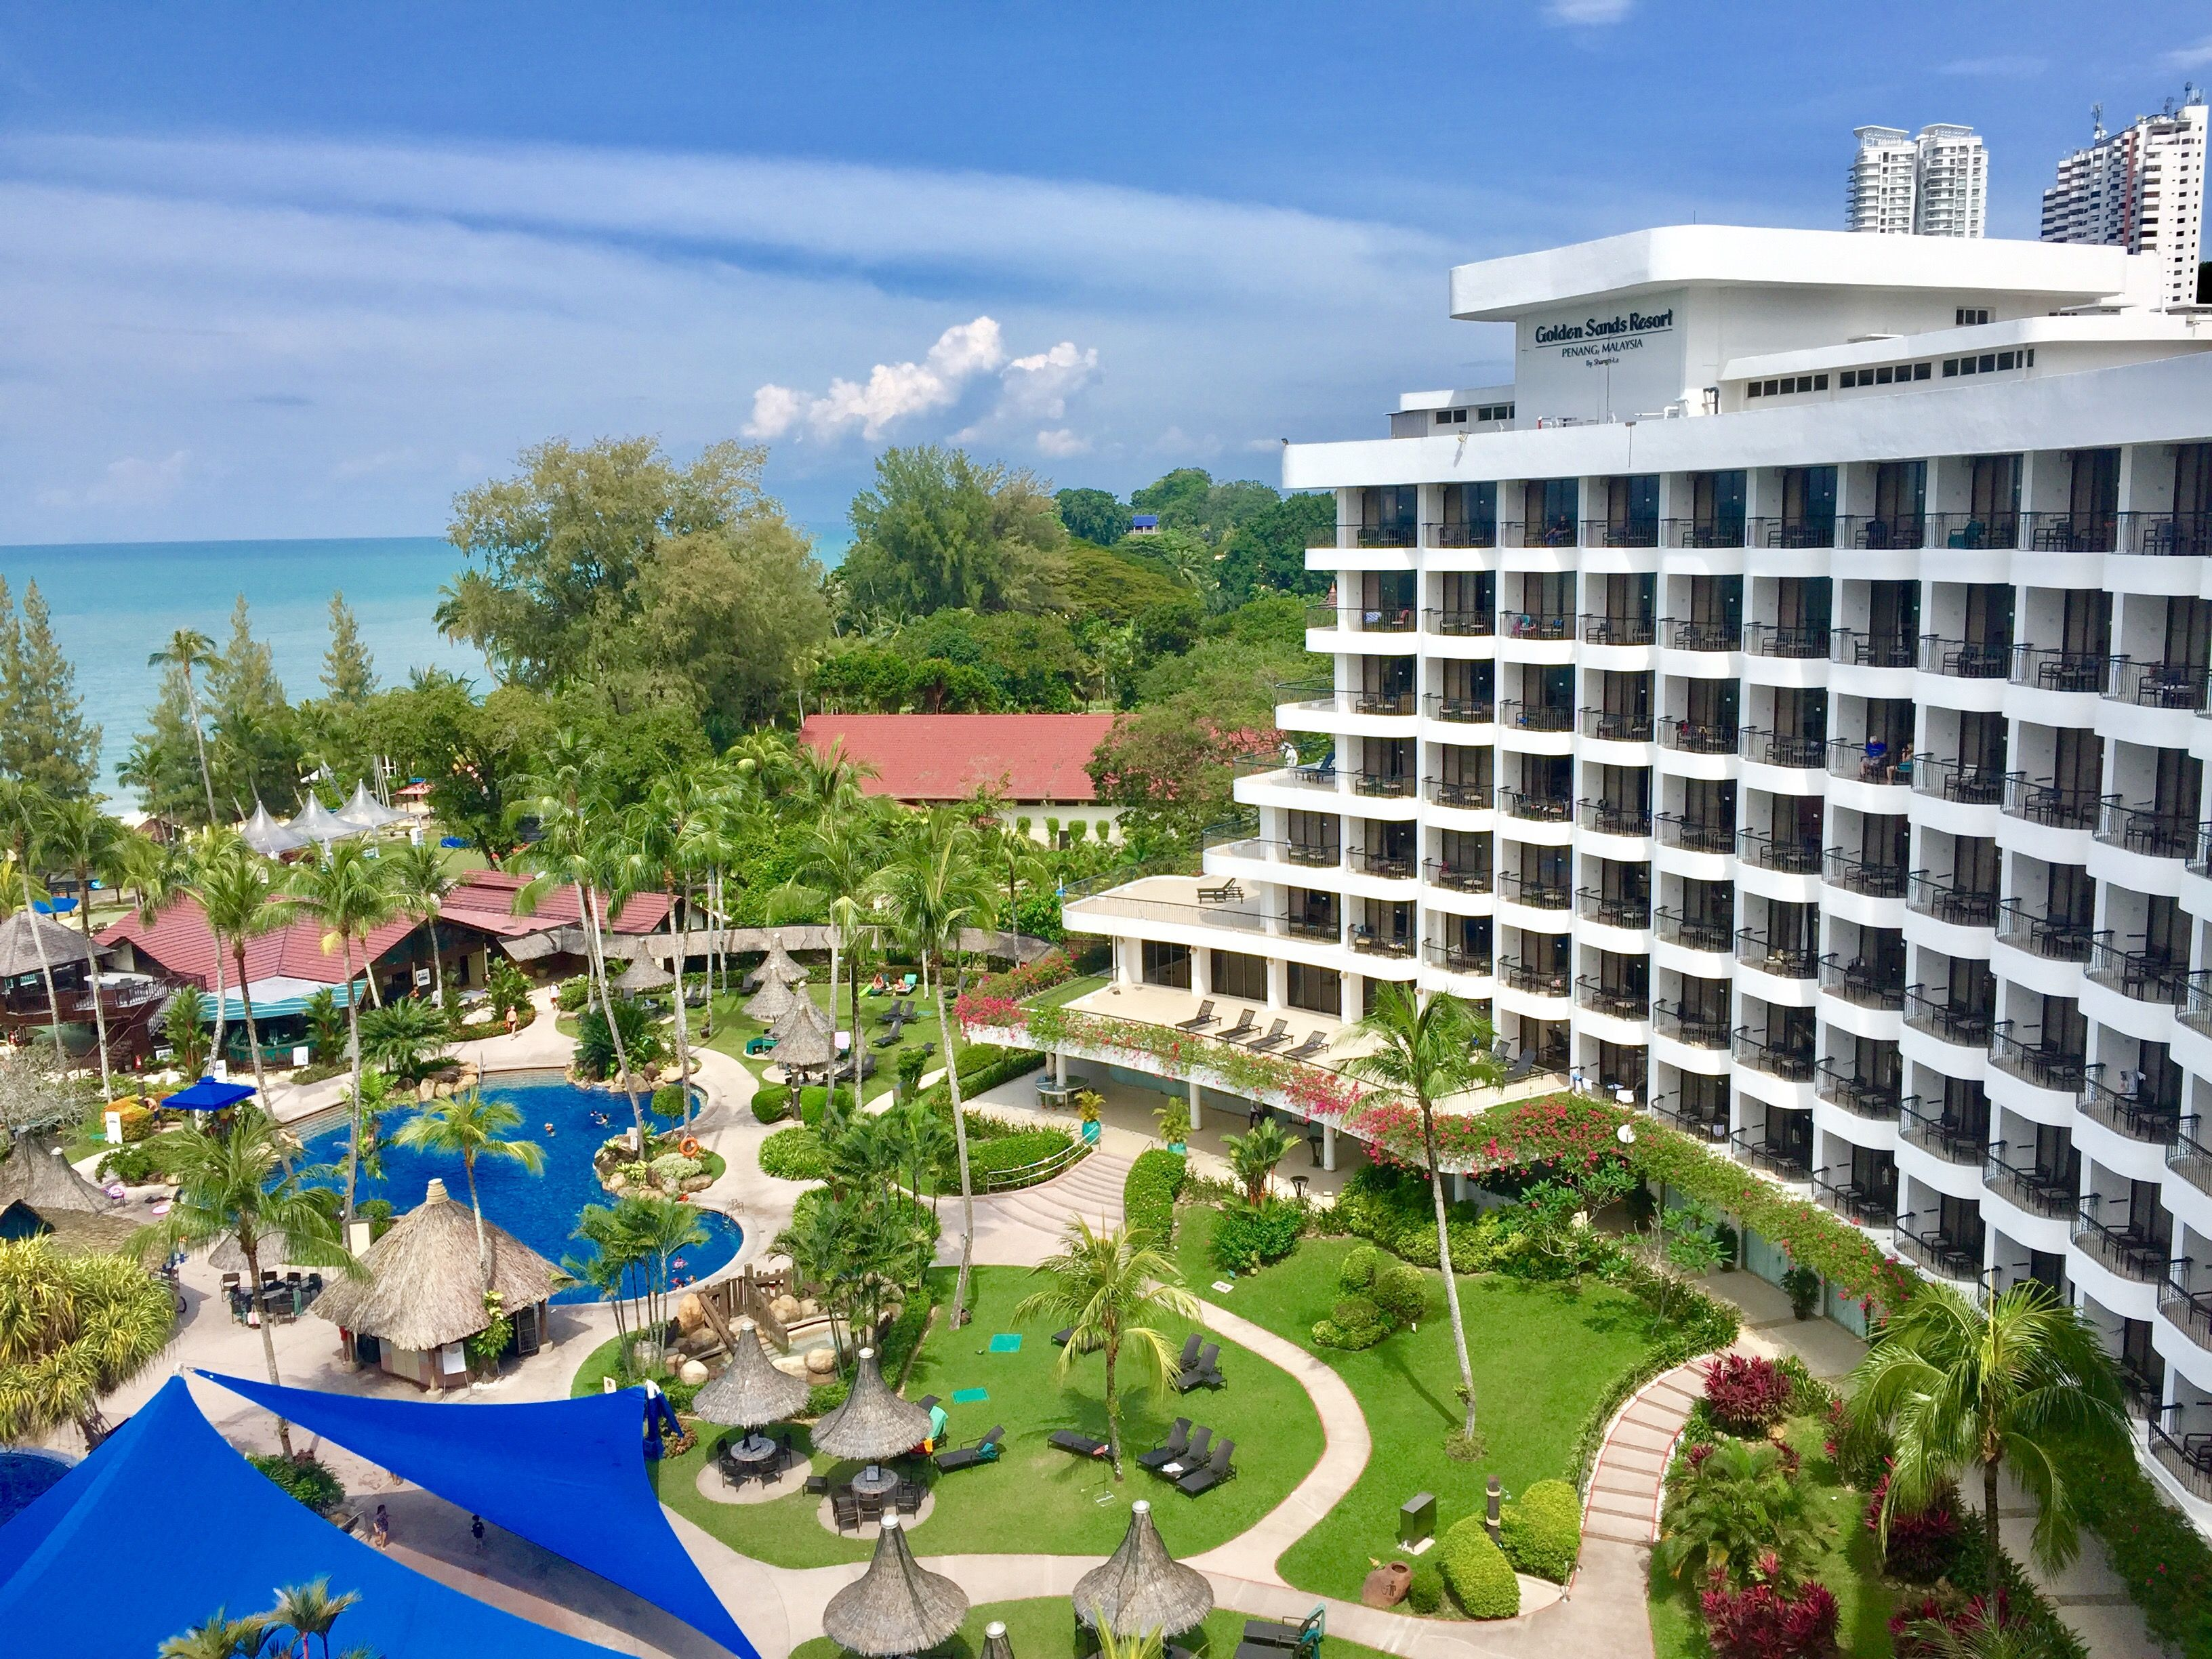 Penang Golden Sands by Shangri La